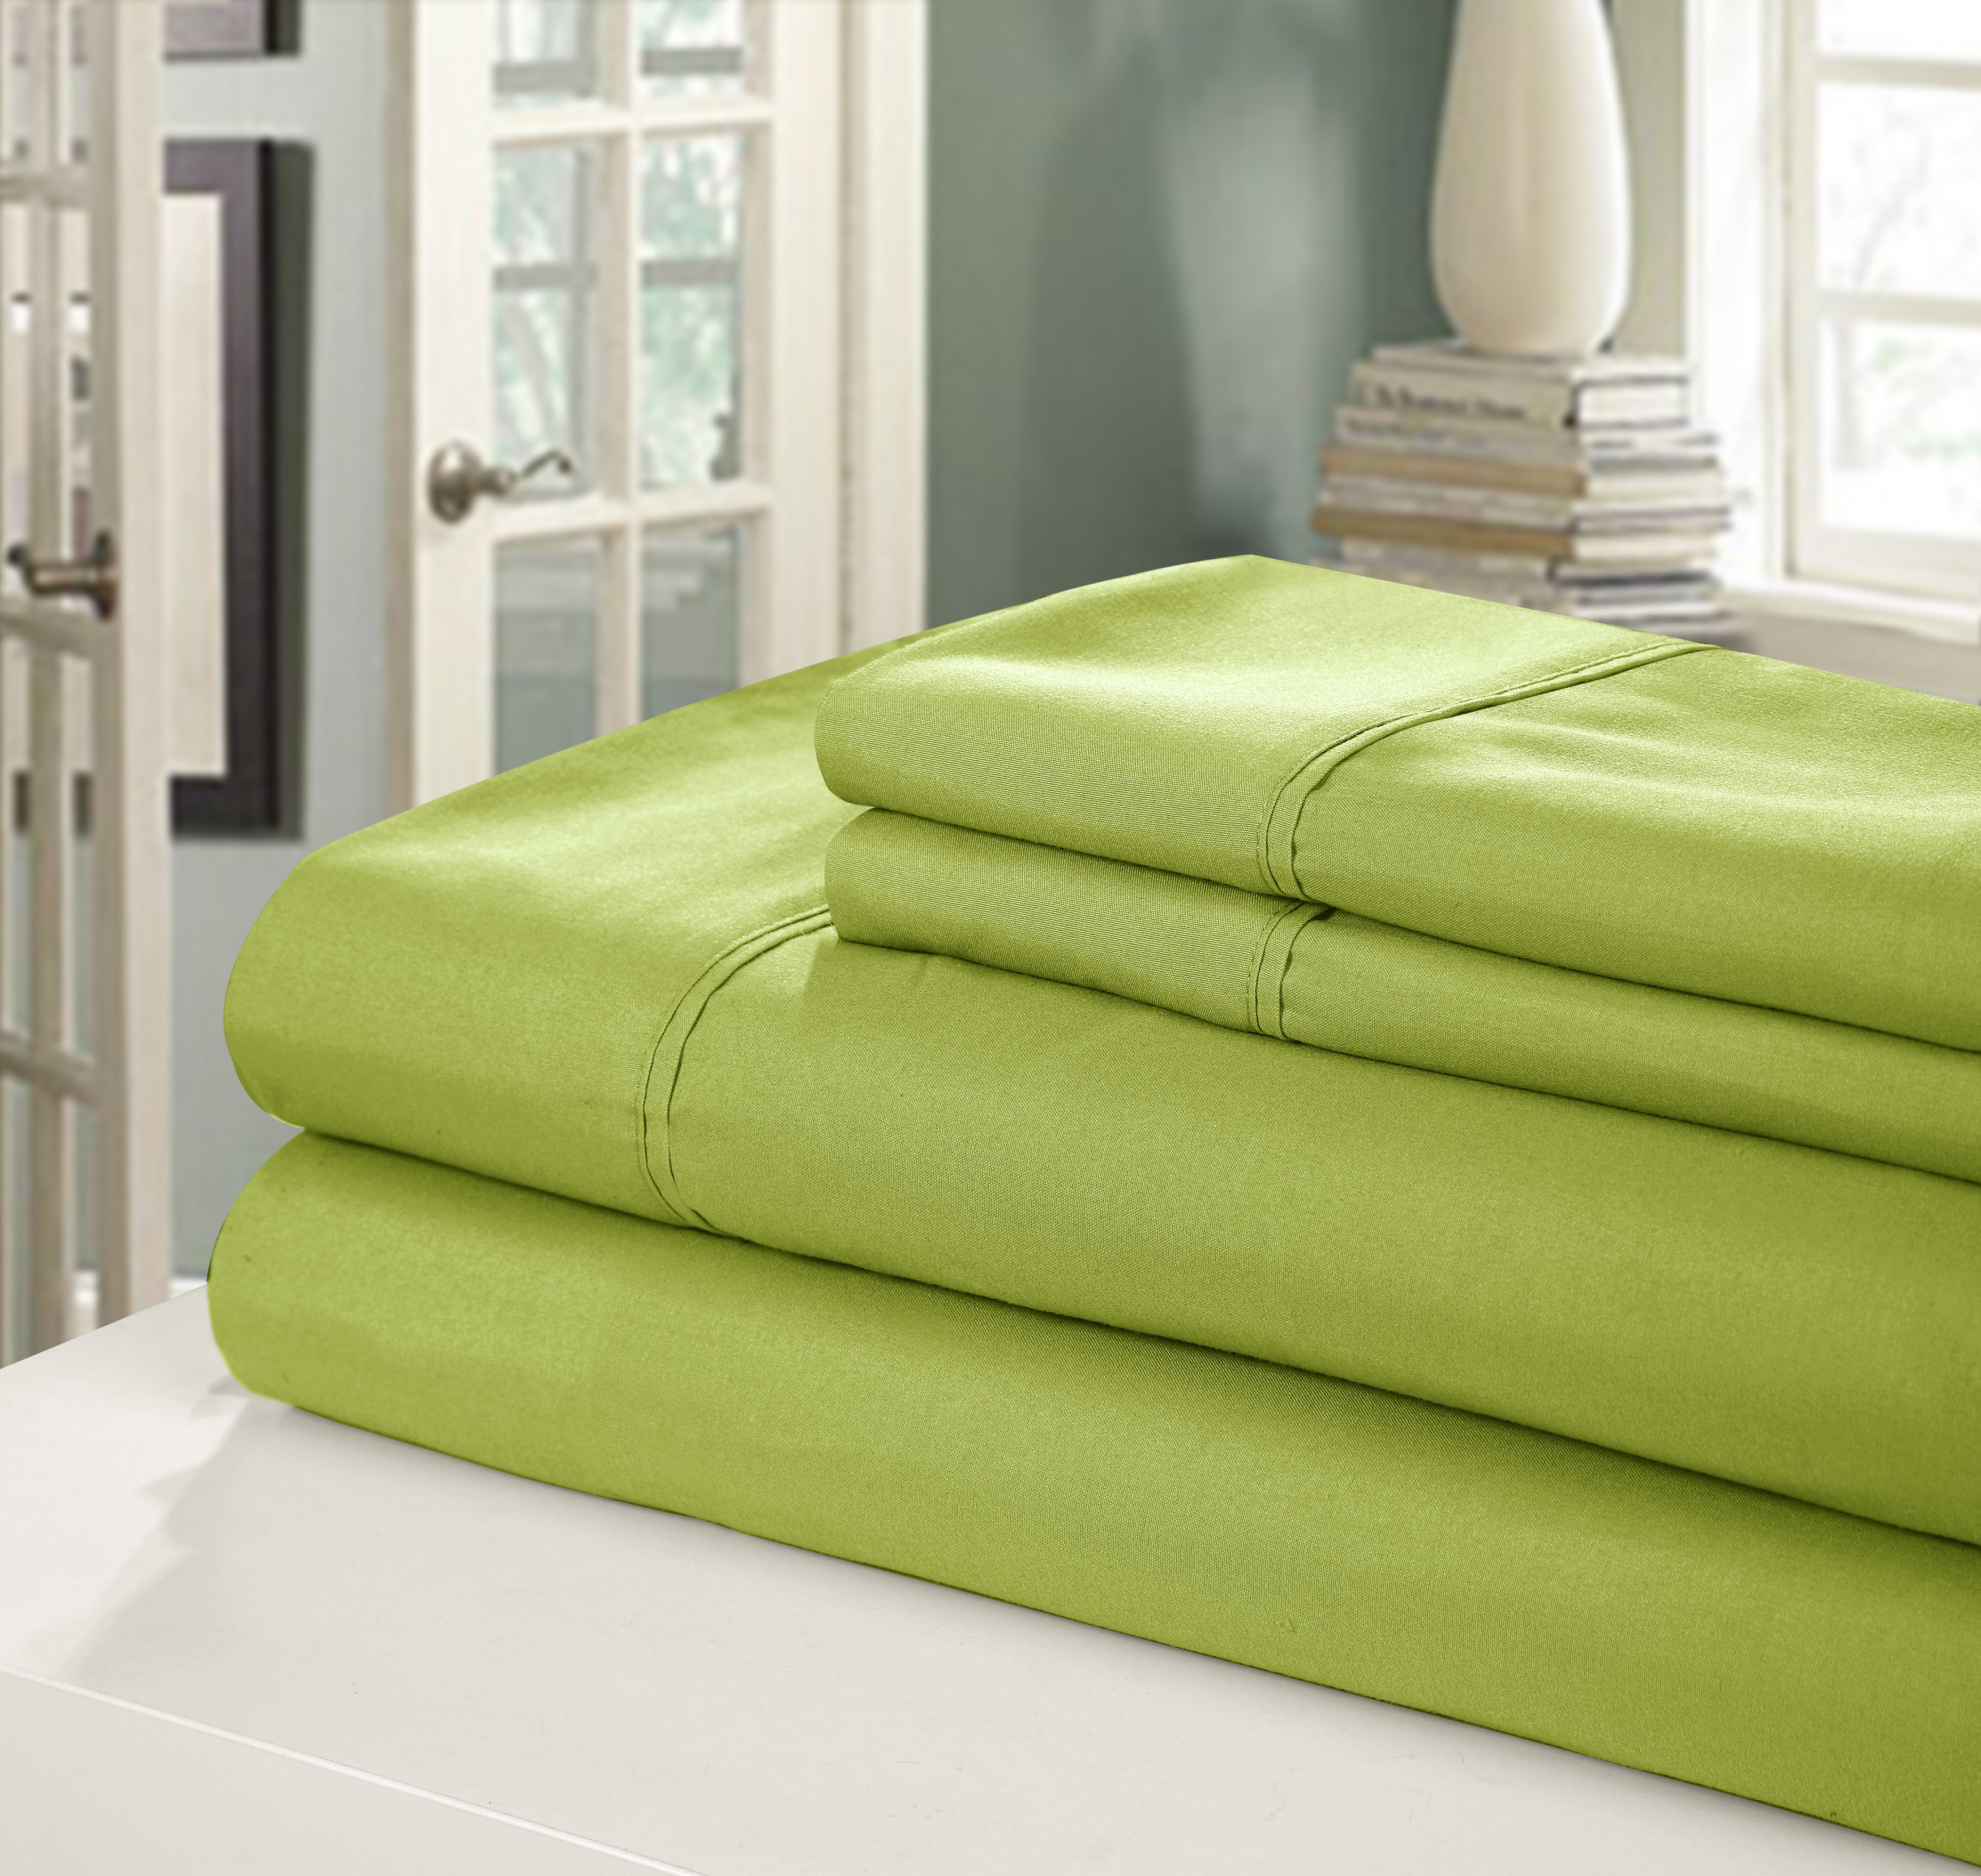 Chic Home NEW!! Chic Home 400 Series Peach Skin Microfiber 4-Piece Sheet Set Ensemble, King, Kiwi